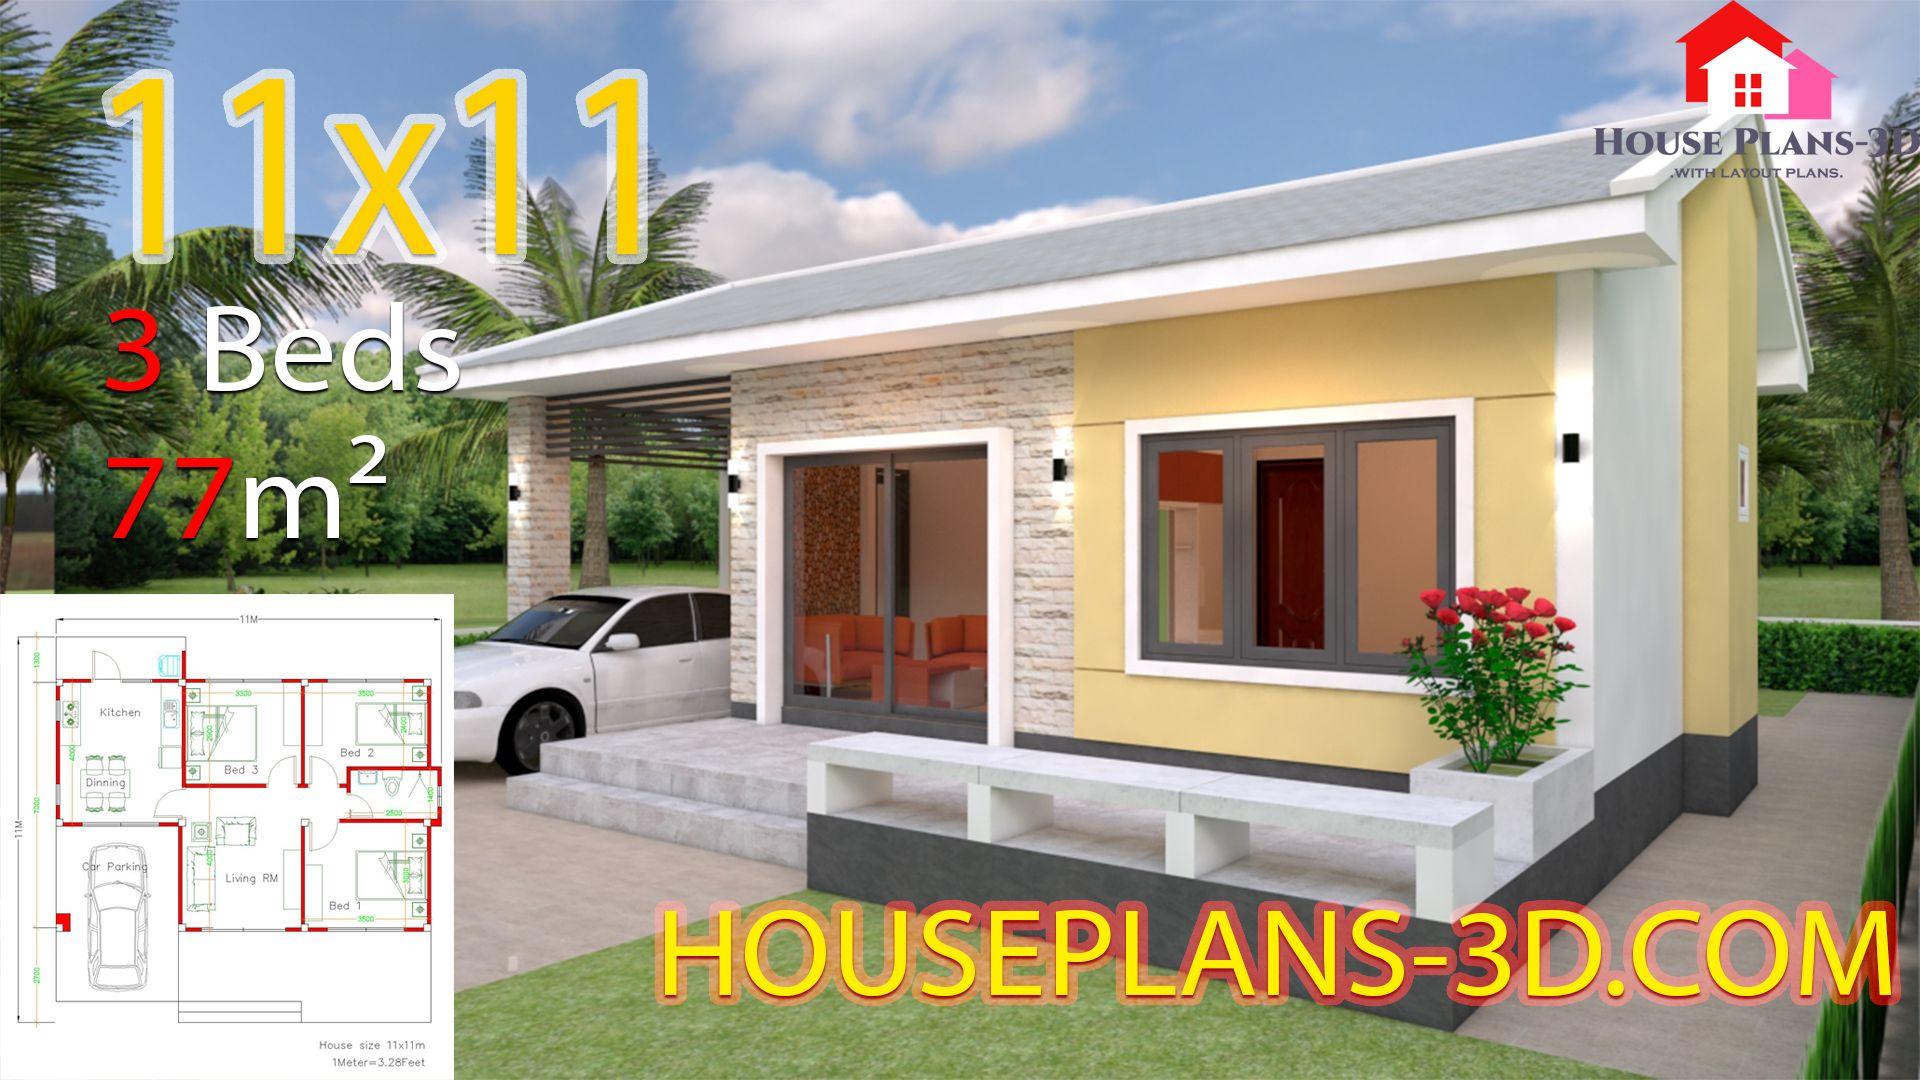 Simple House Design Plans 11x11 With 3 Bedroomsthe House Has Car Parking And Garden Living Room Din Simple House Design Small House Design Plans House Design